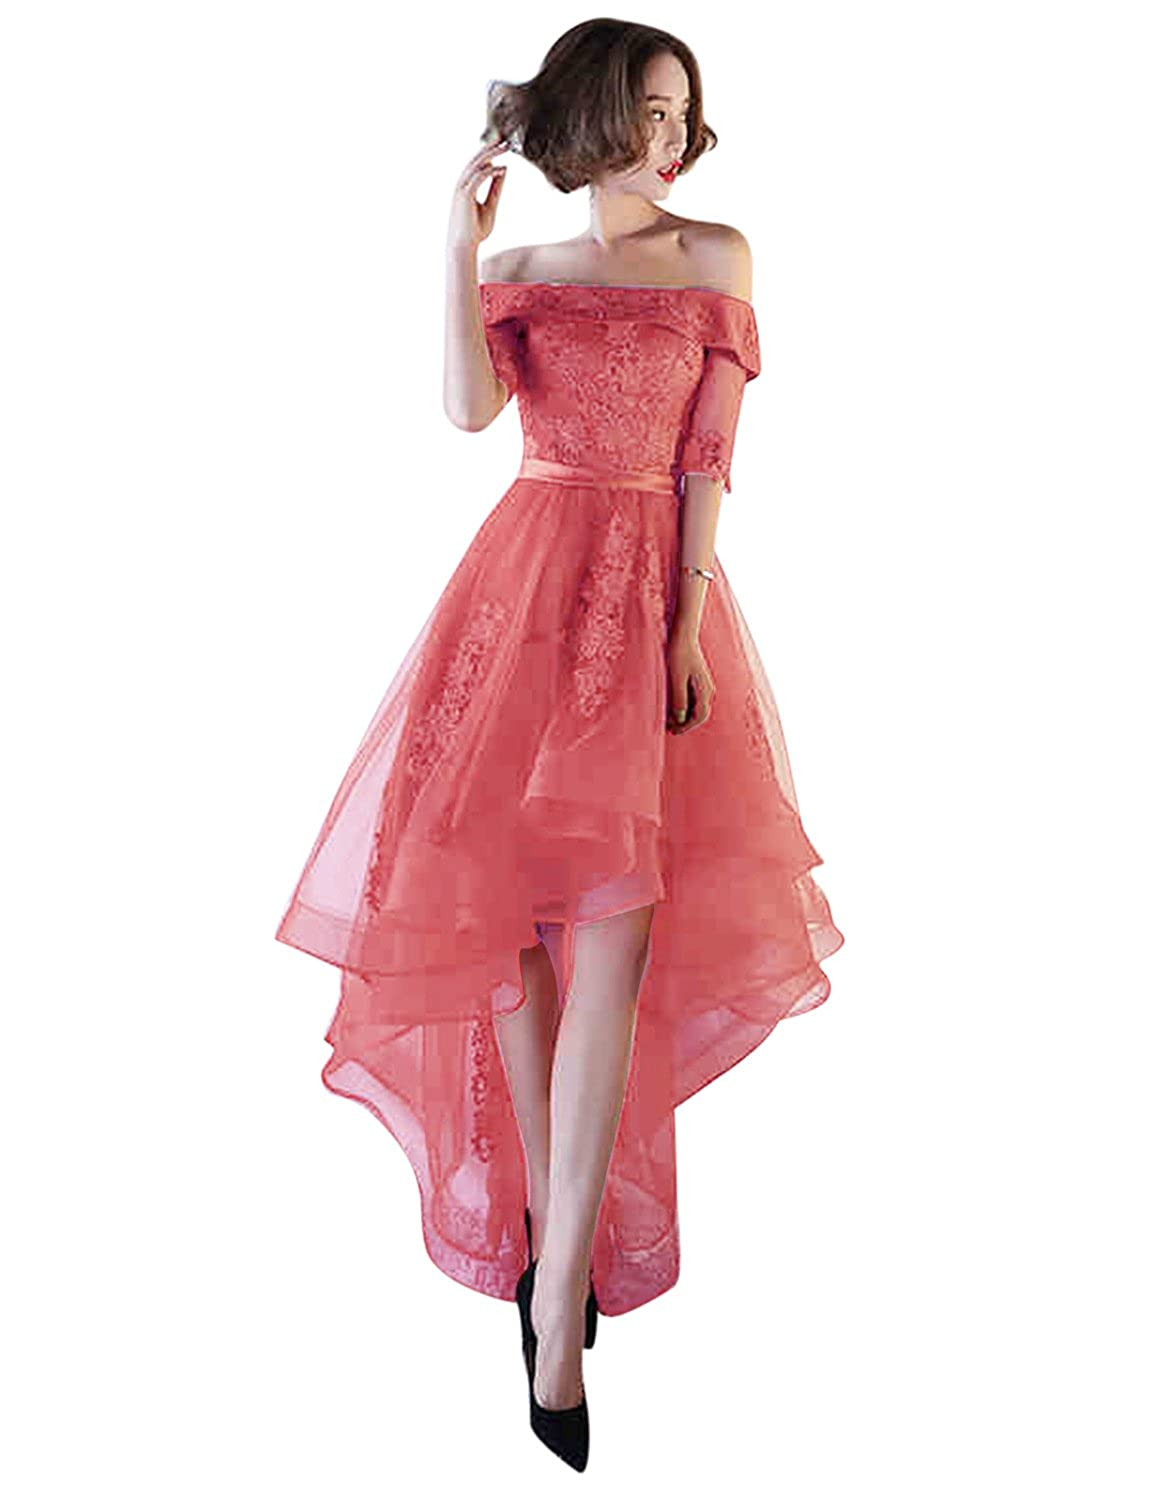 Coral BessWedding Women's Tulle High Low Homecoming Dresses Short 2018 Formal Prom Gown BHZ707